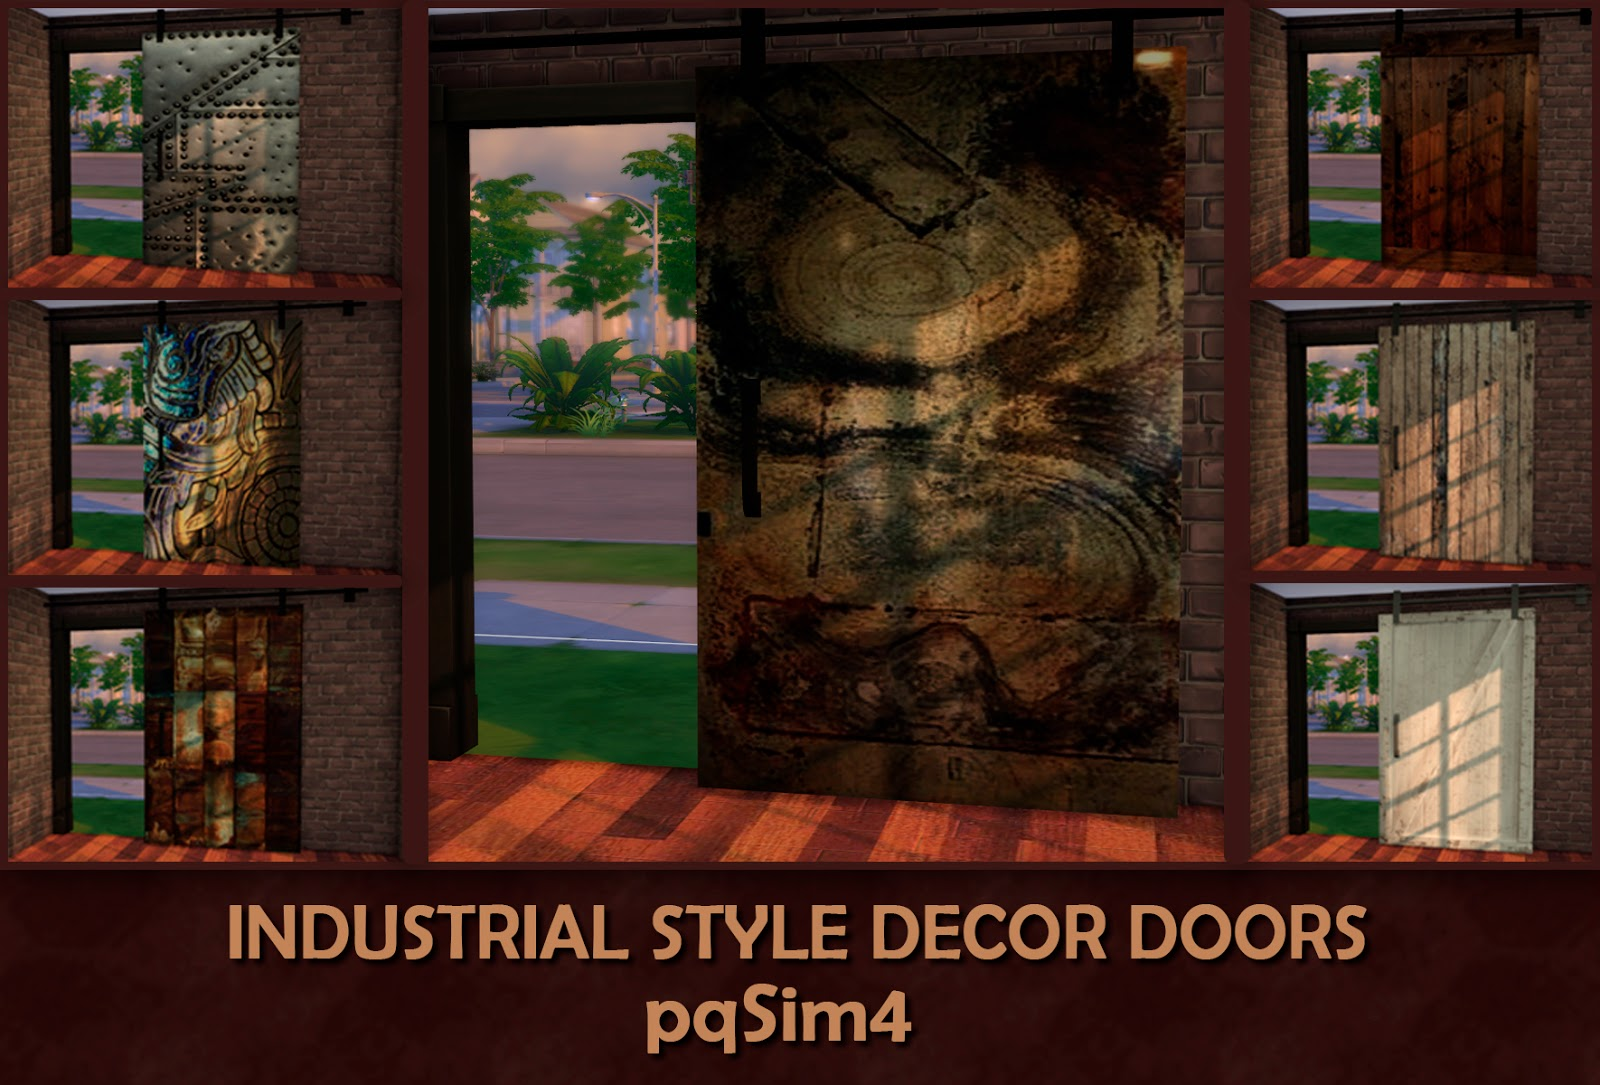 Decorative Industrial Doors by pqSim4